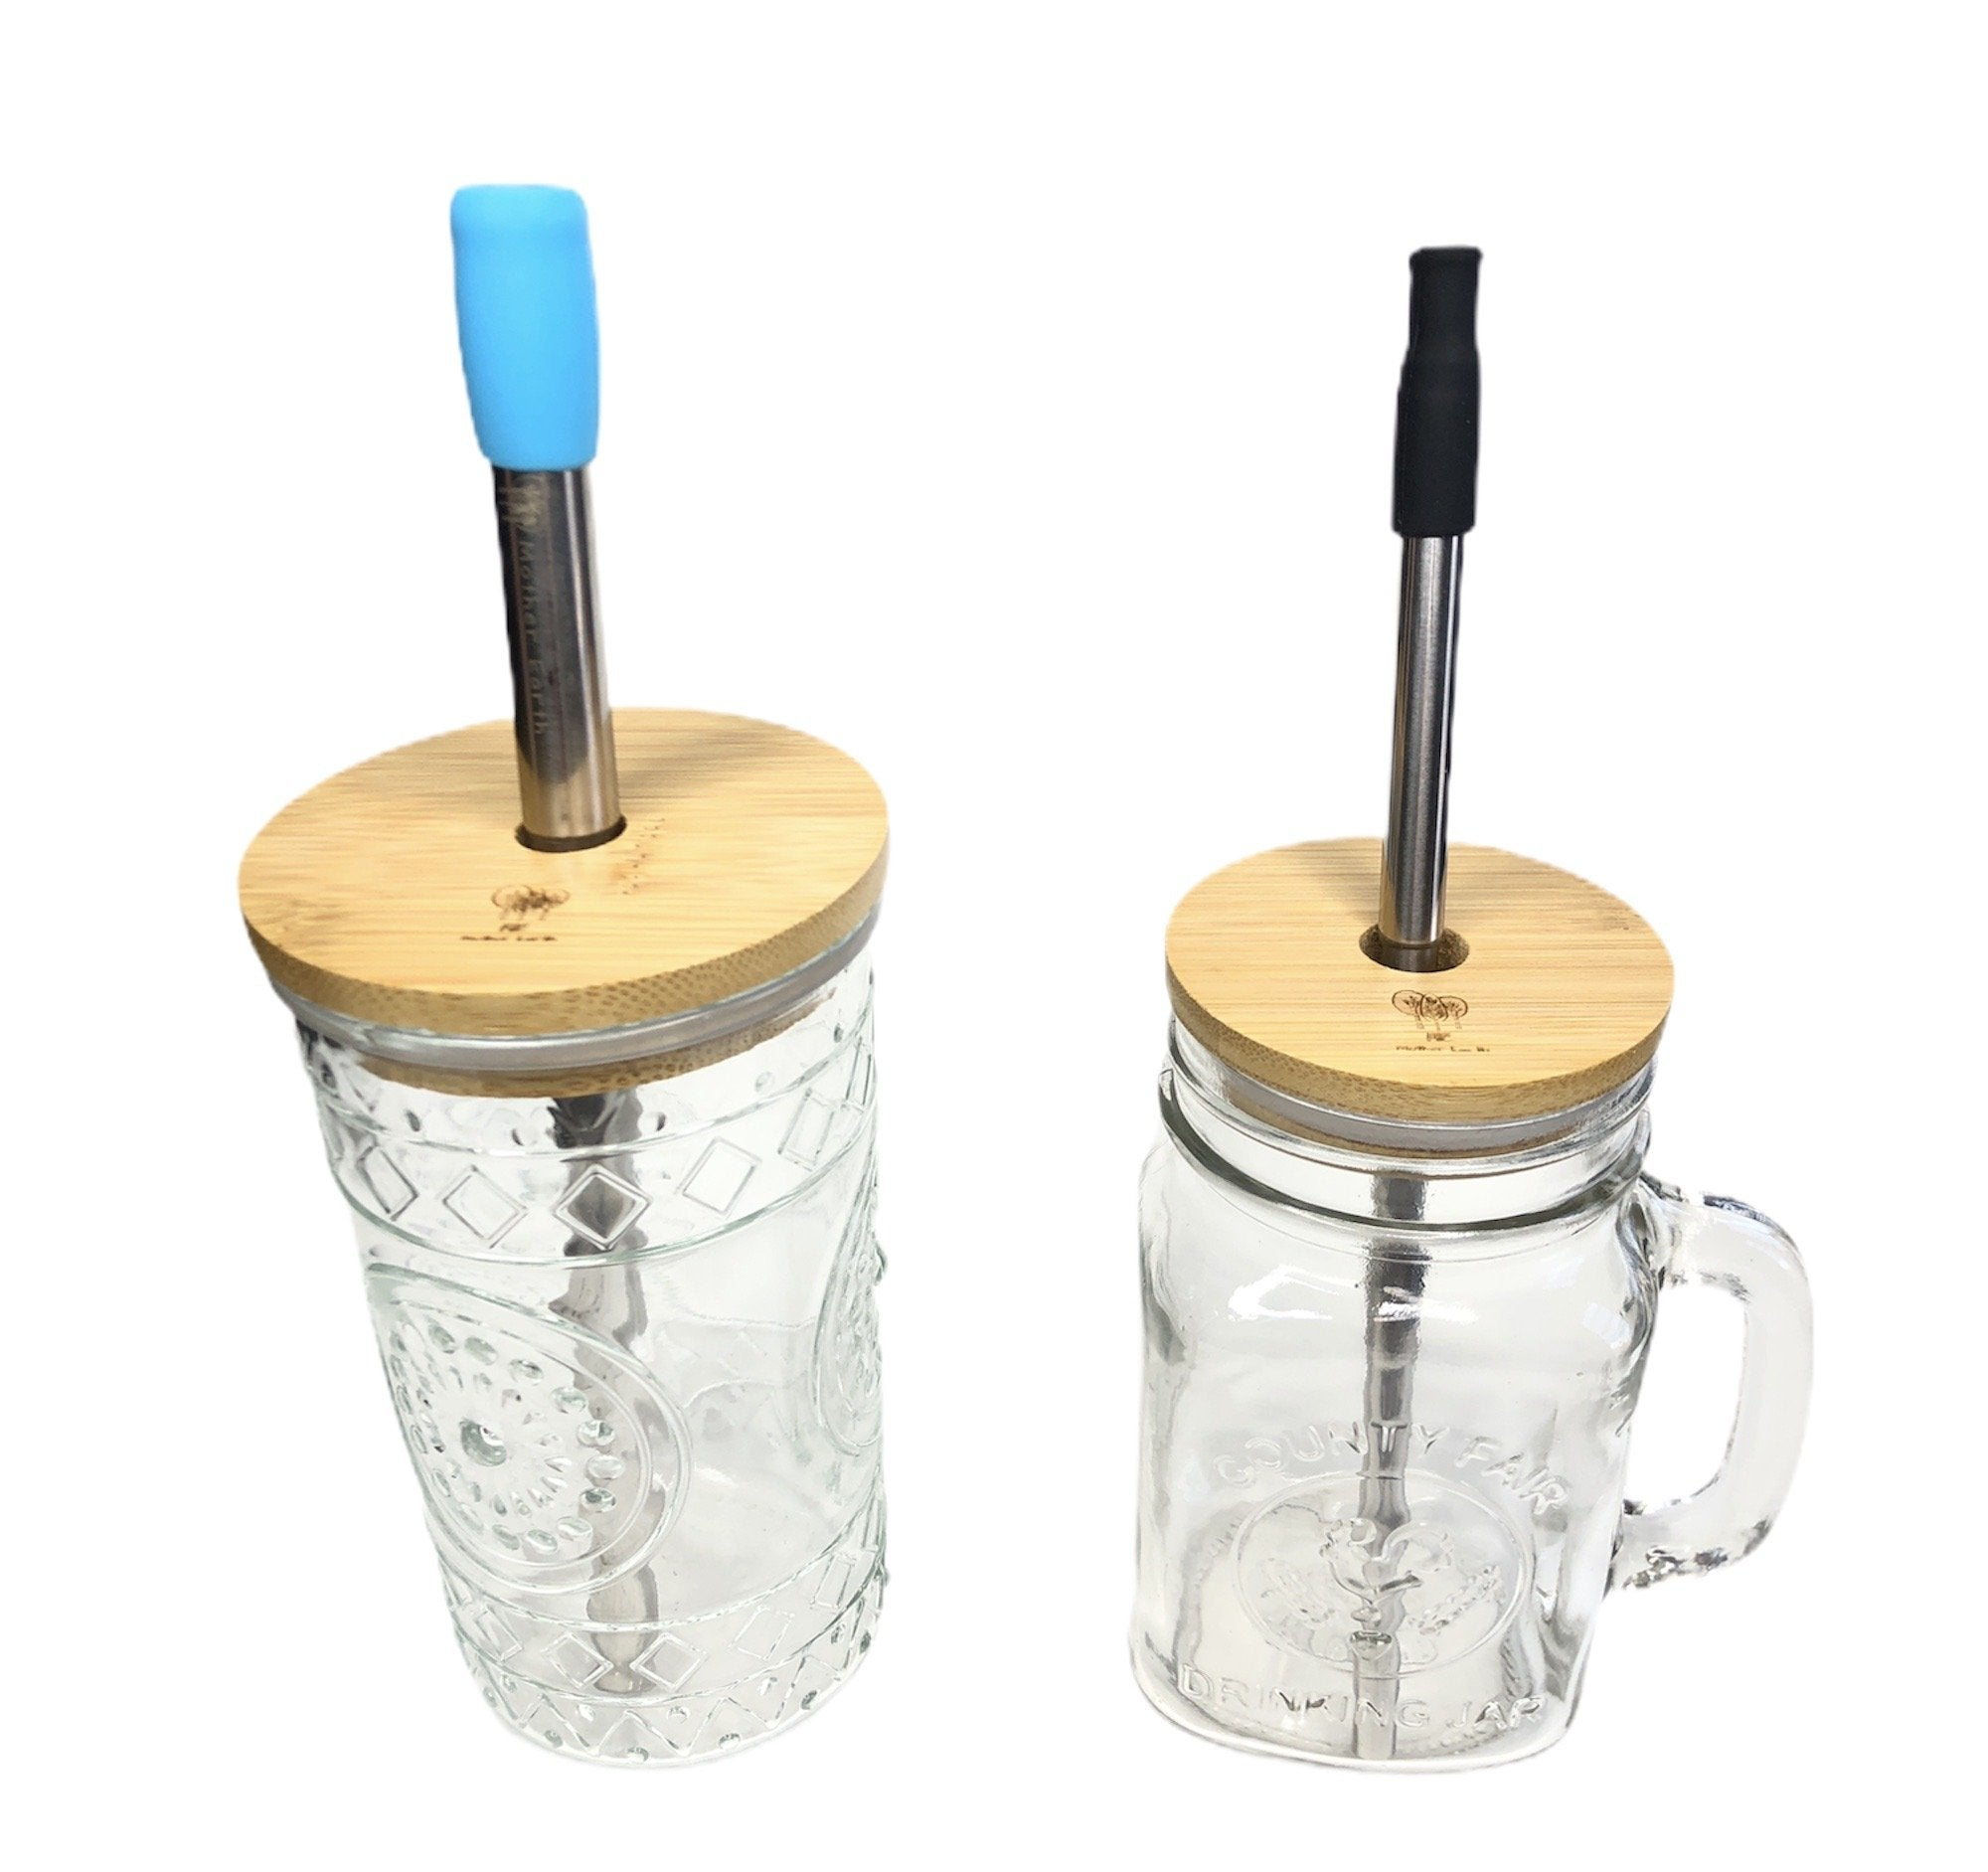 Me Mother Earth bamboo jar lids with mason jars and straws